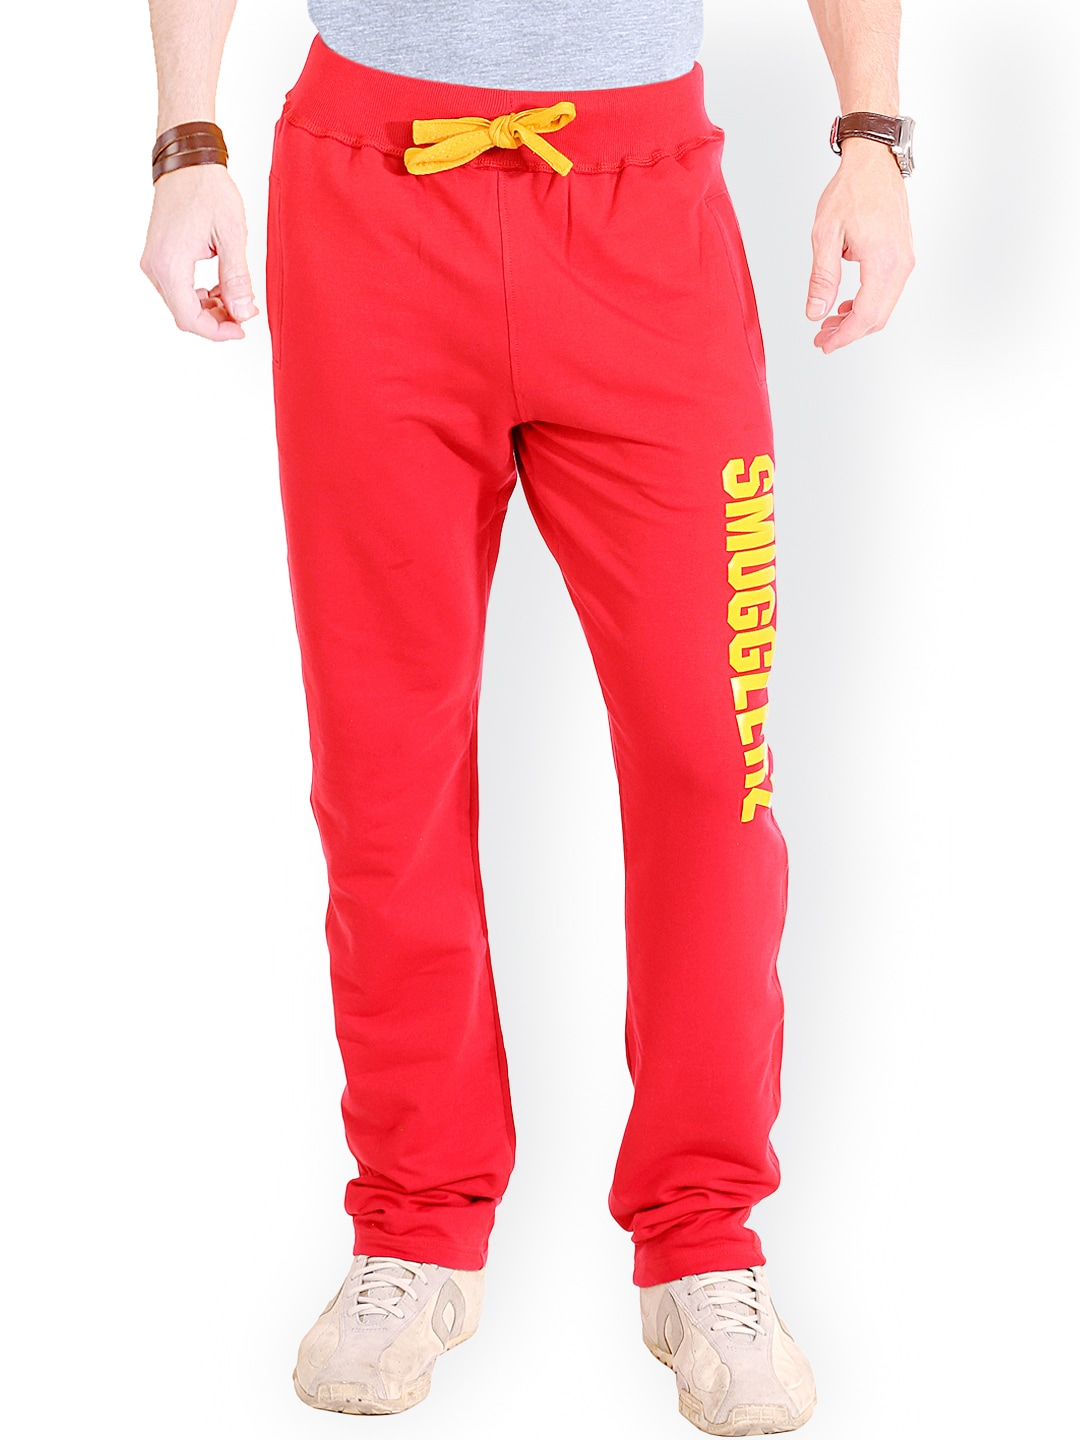 SMUGGLERZ INC. Red Lounge Pants SMGZ04